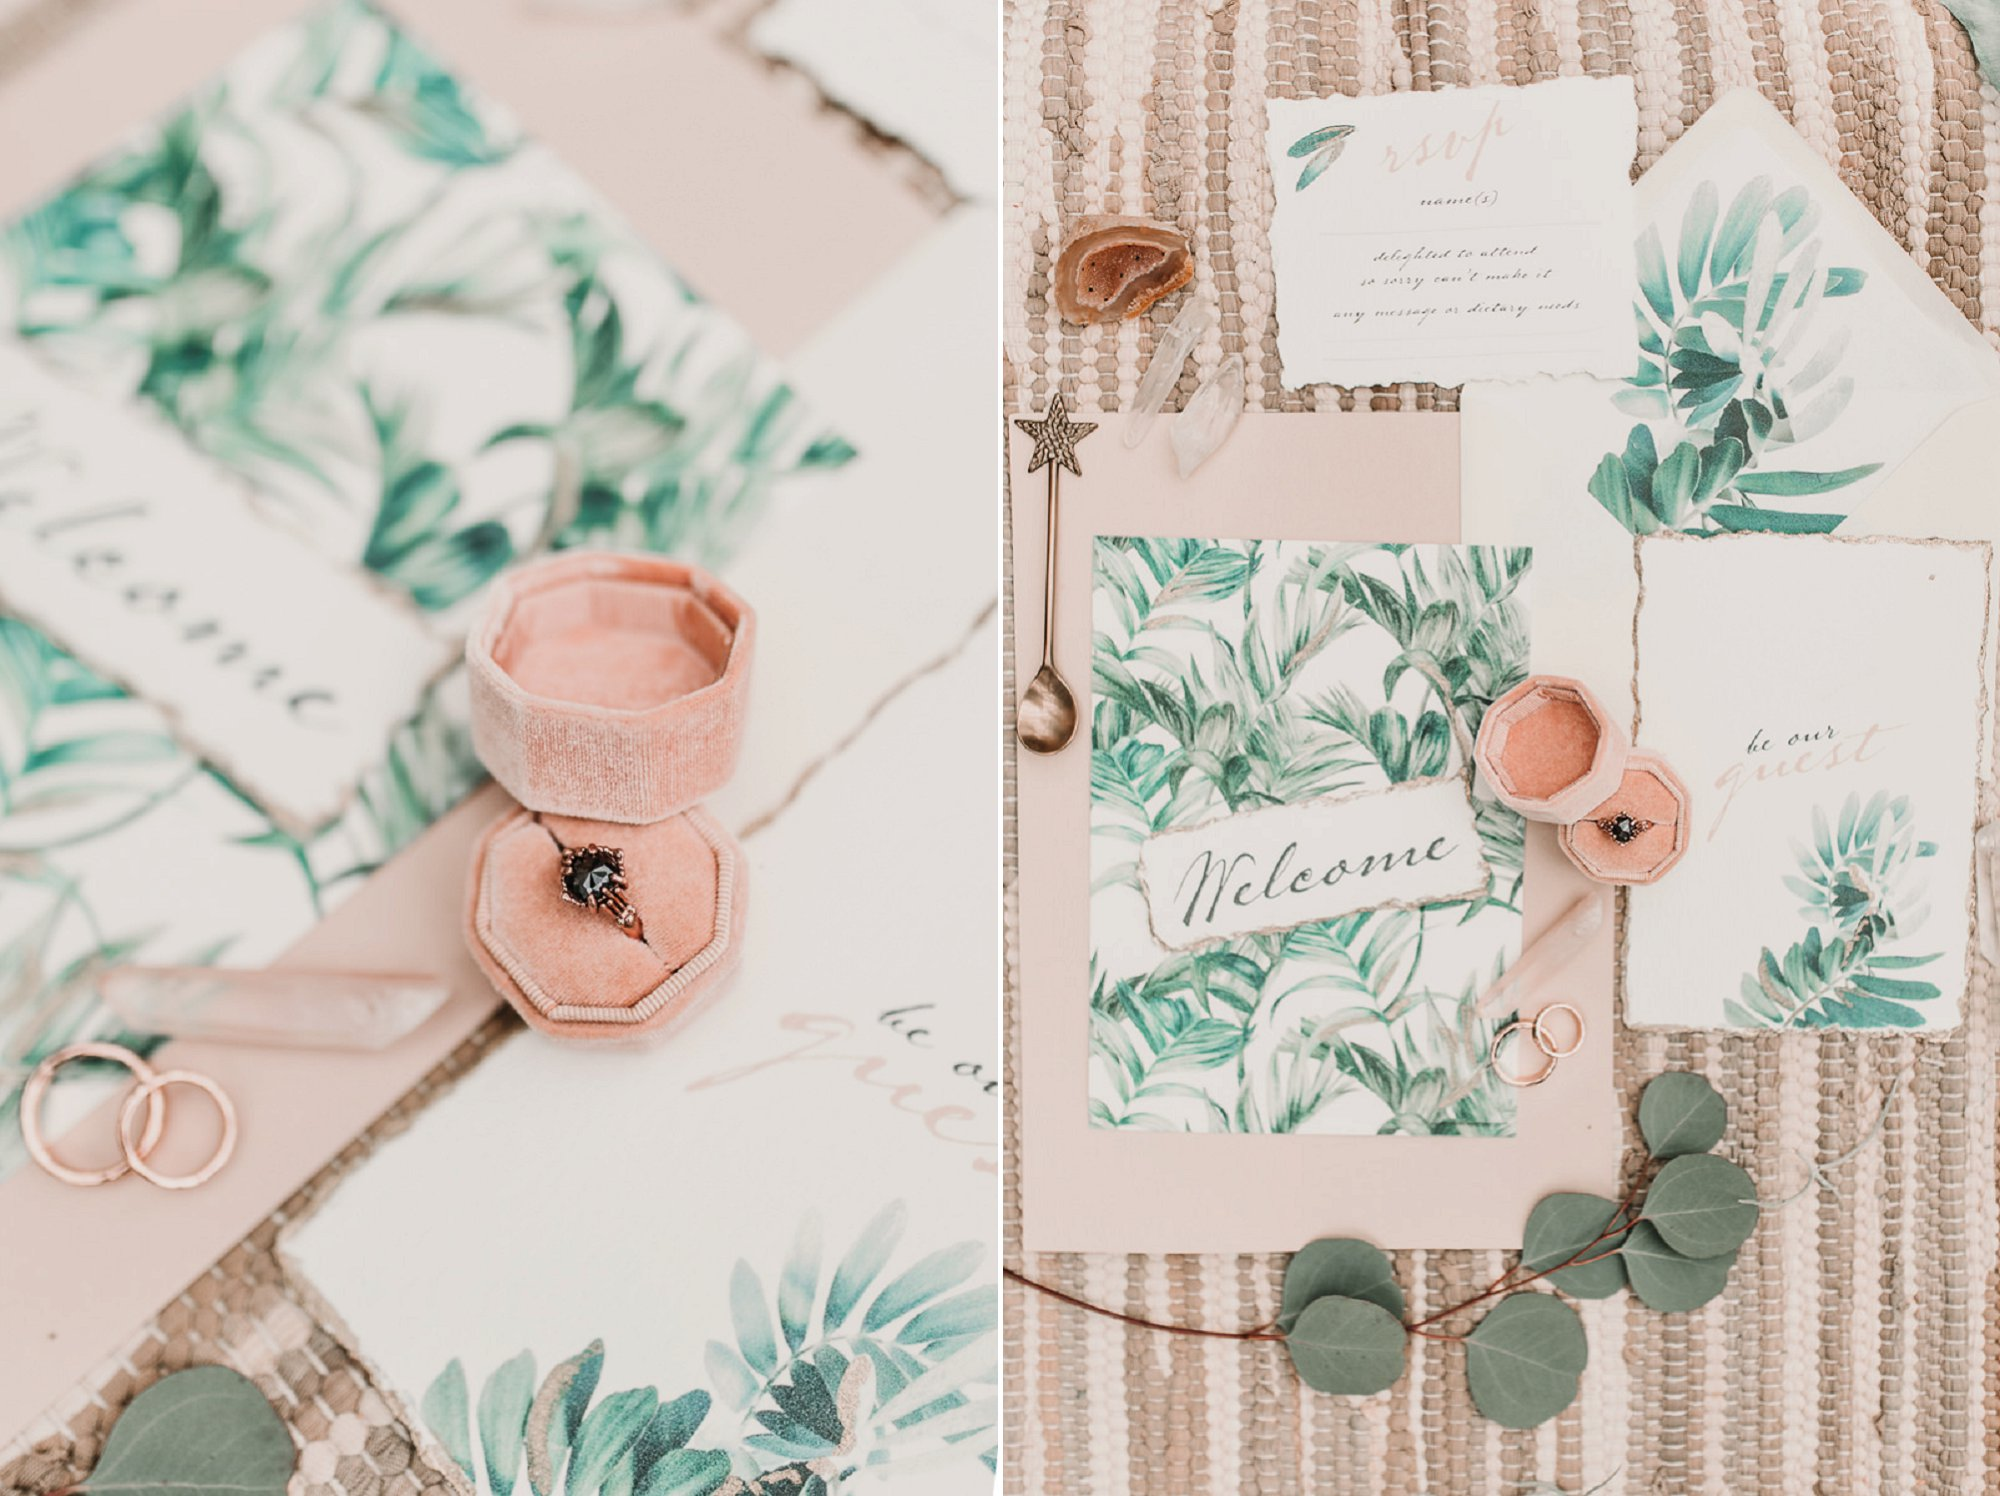 Boho engagement ring goals. Blush pink and palm wedding stationary. Blush and green Bohemian Wedding Inspiration bringing a little California to you where ever you are in the world. Relaxed styling and desert inspiration and vibes. Wedding ideas for boho brides who an effortlessly relaxed, bohemian wedding. Shot by Natalie Pluck Photography. See full blog post for credits and more inspiration here https://www.nataliepluck.com/bohemian-wedding-inspiration/ 